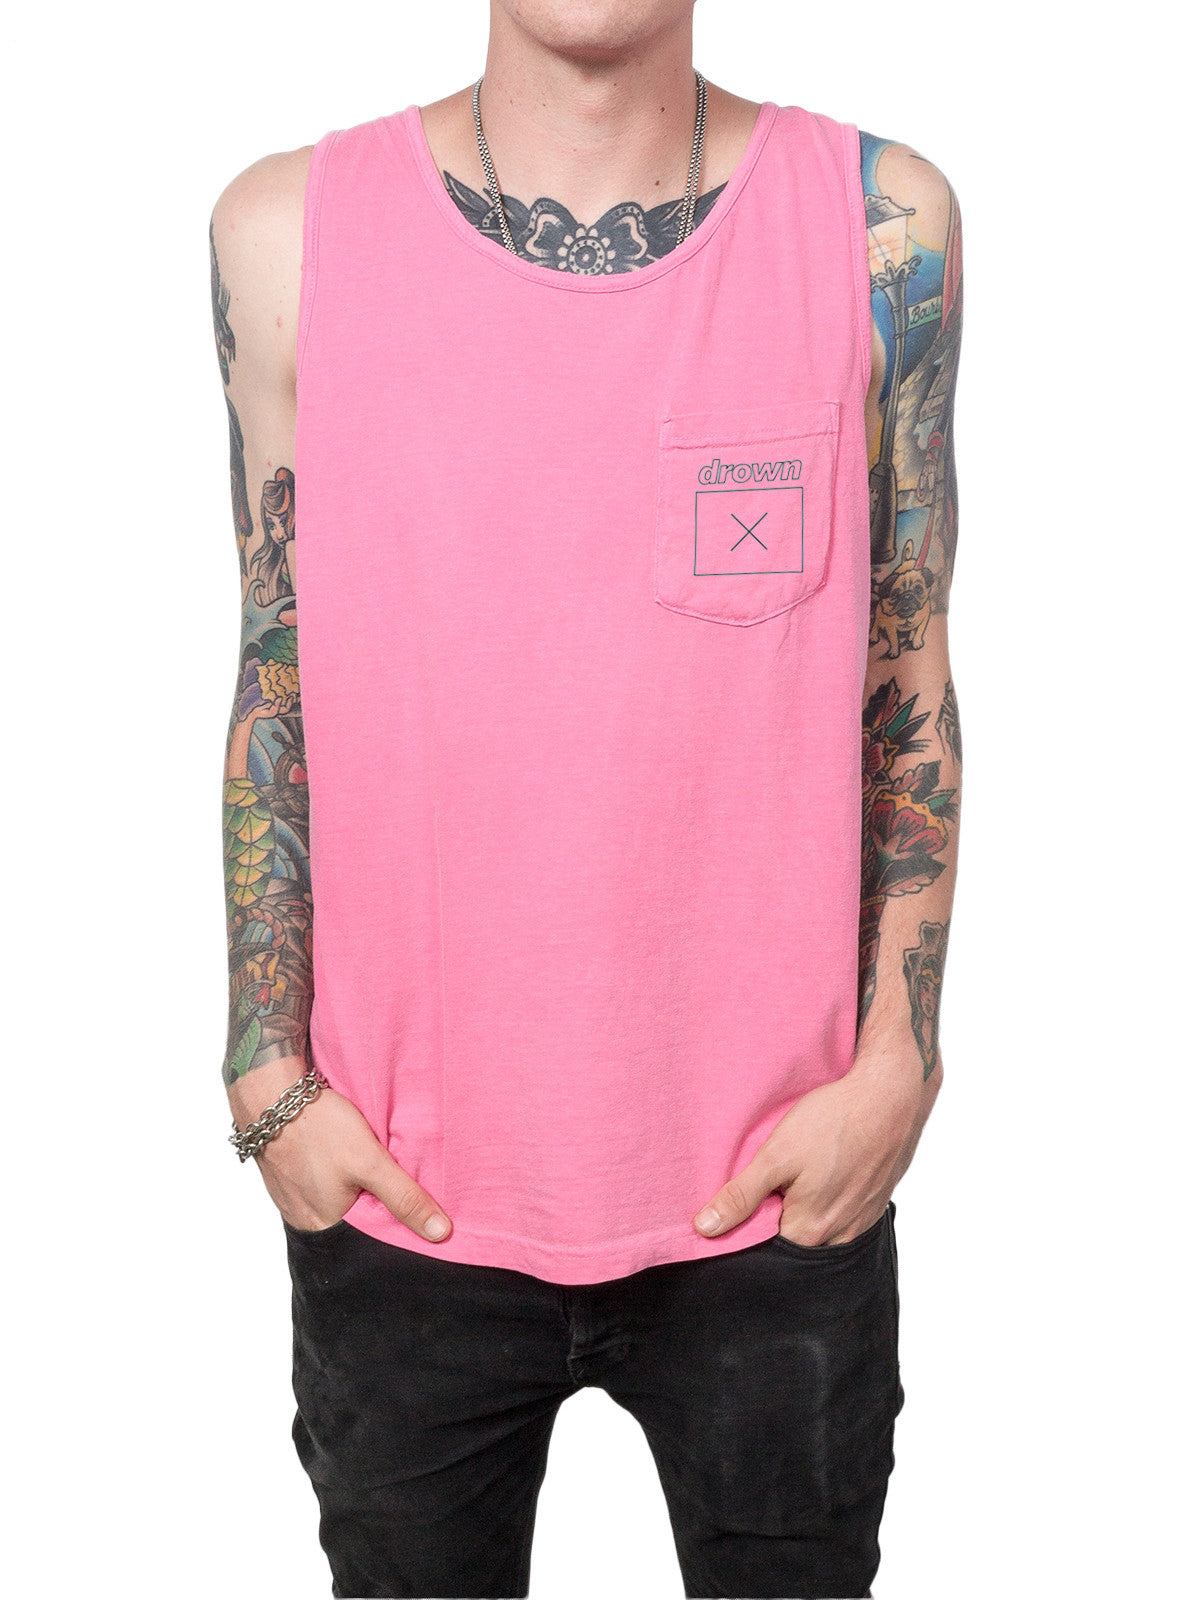 Counterparts - Drown Tank Top - Merch Limited